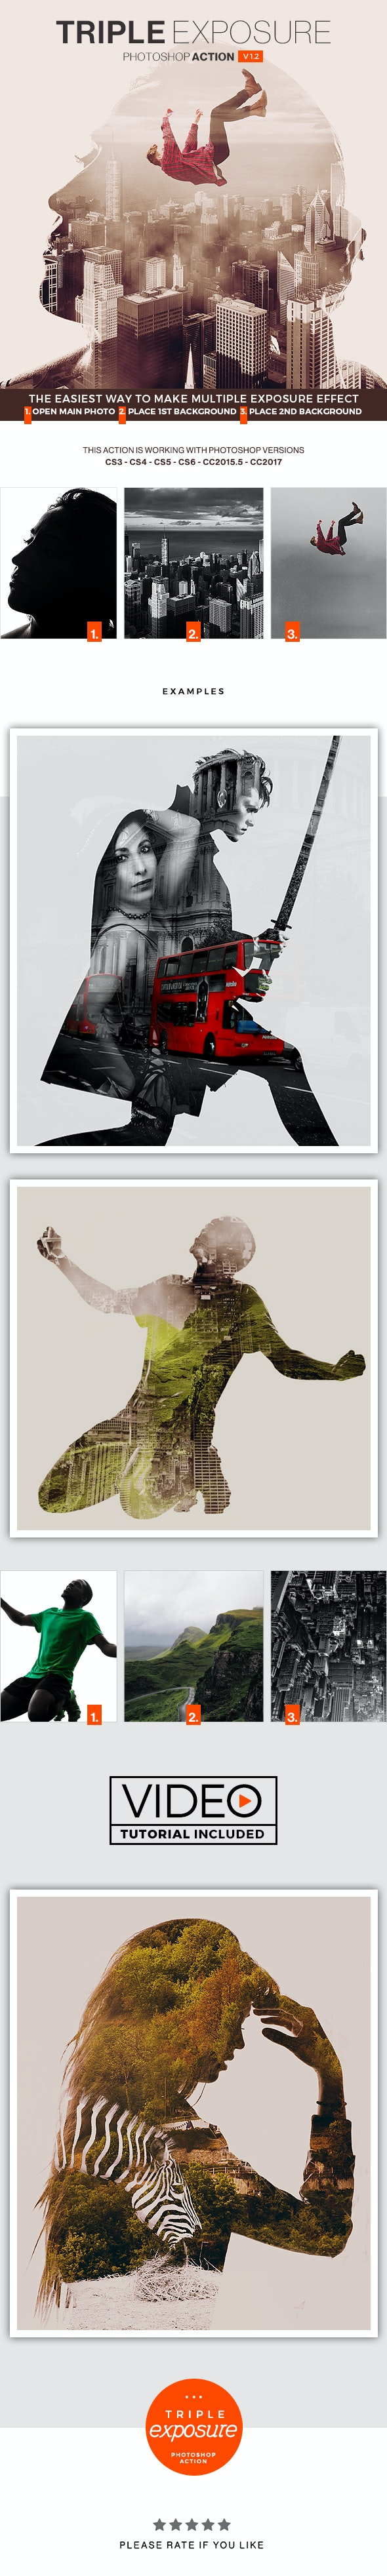 Triple Exposure Photoshop Action - Photo Effects Actions